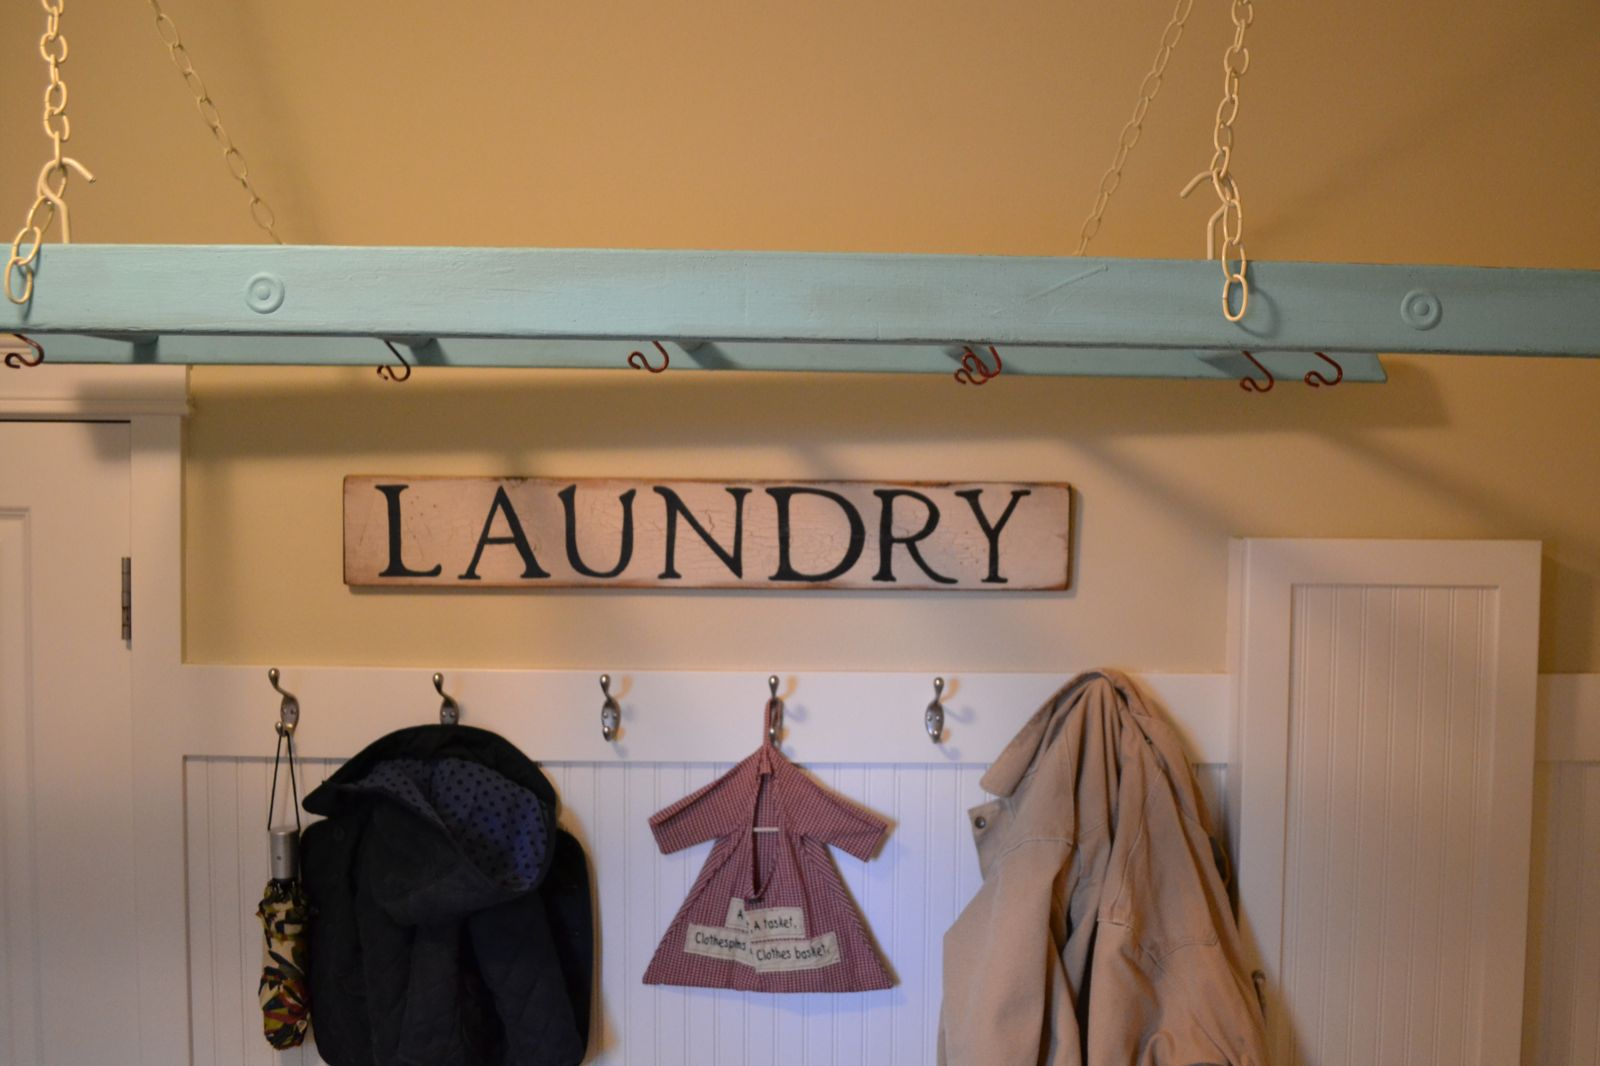 I've been using my ladder laundry rack for a few weeks now, and it has  quickly become one of my favorite things in the house!